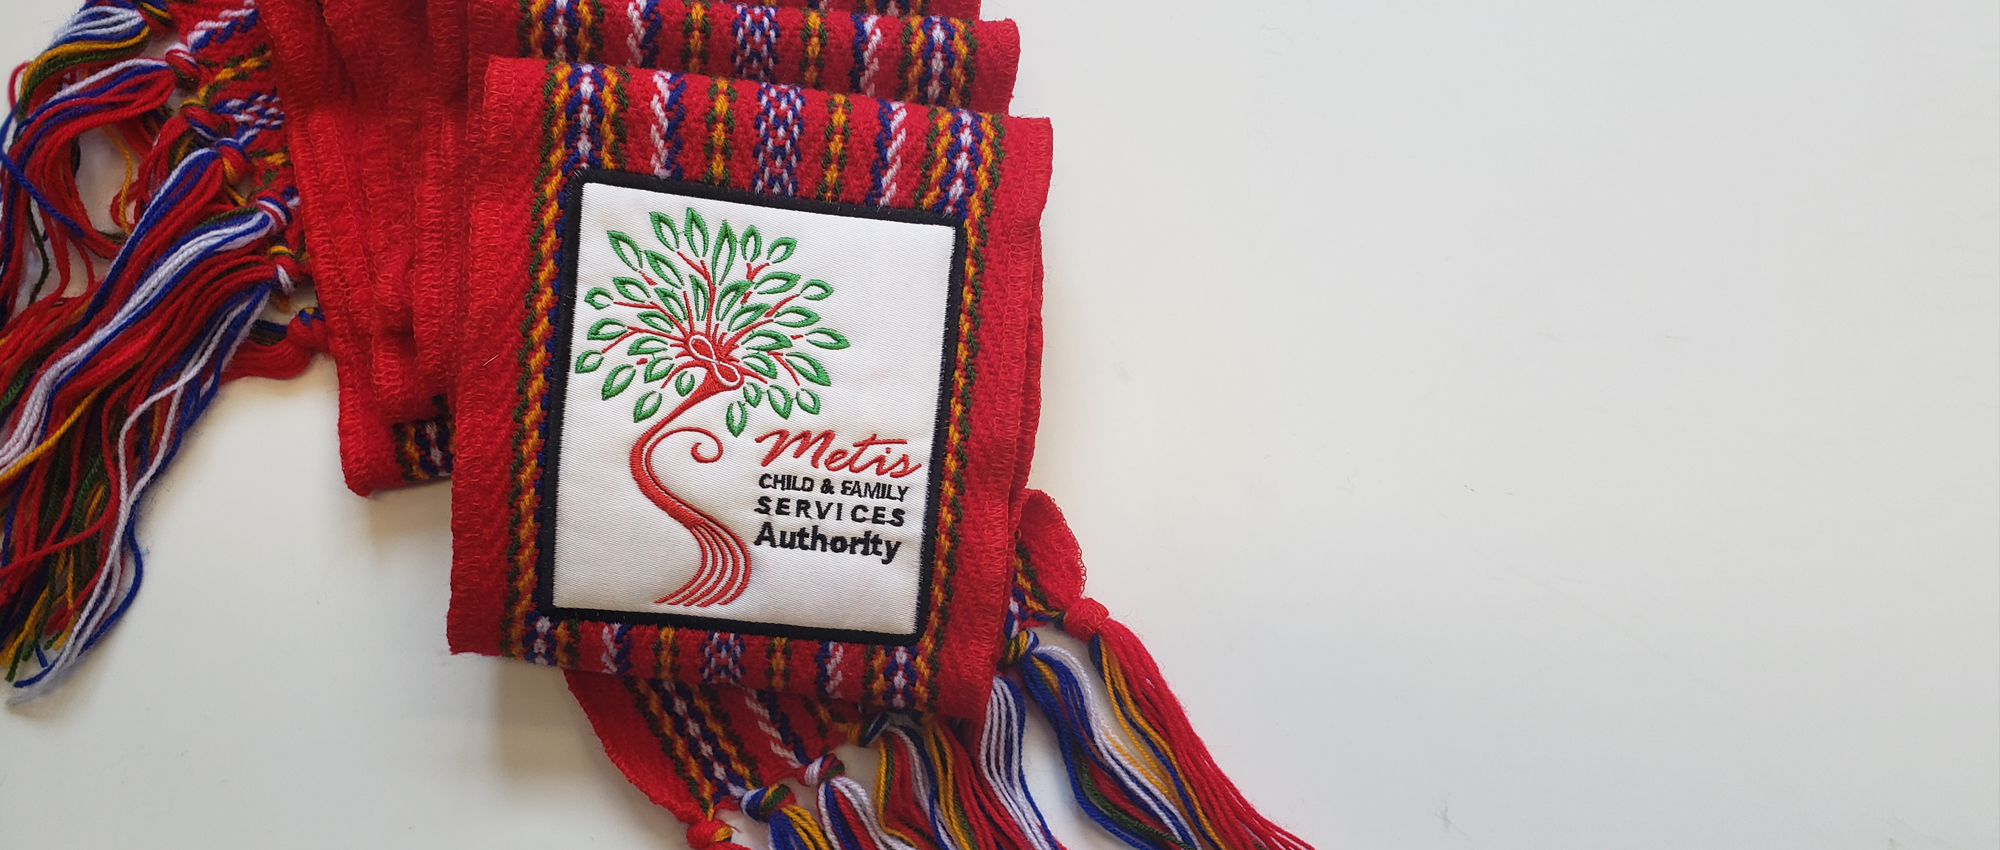 About Our Metis Child and Family Services Authority